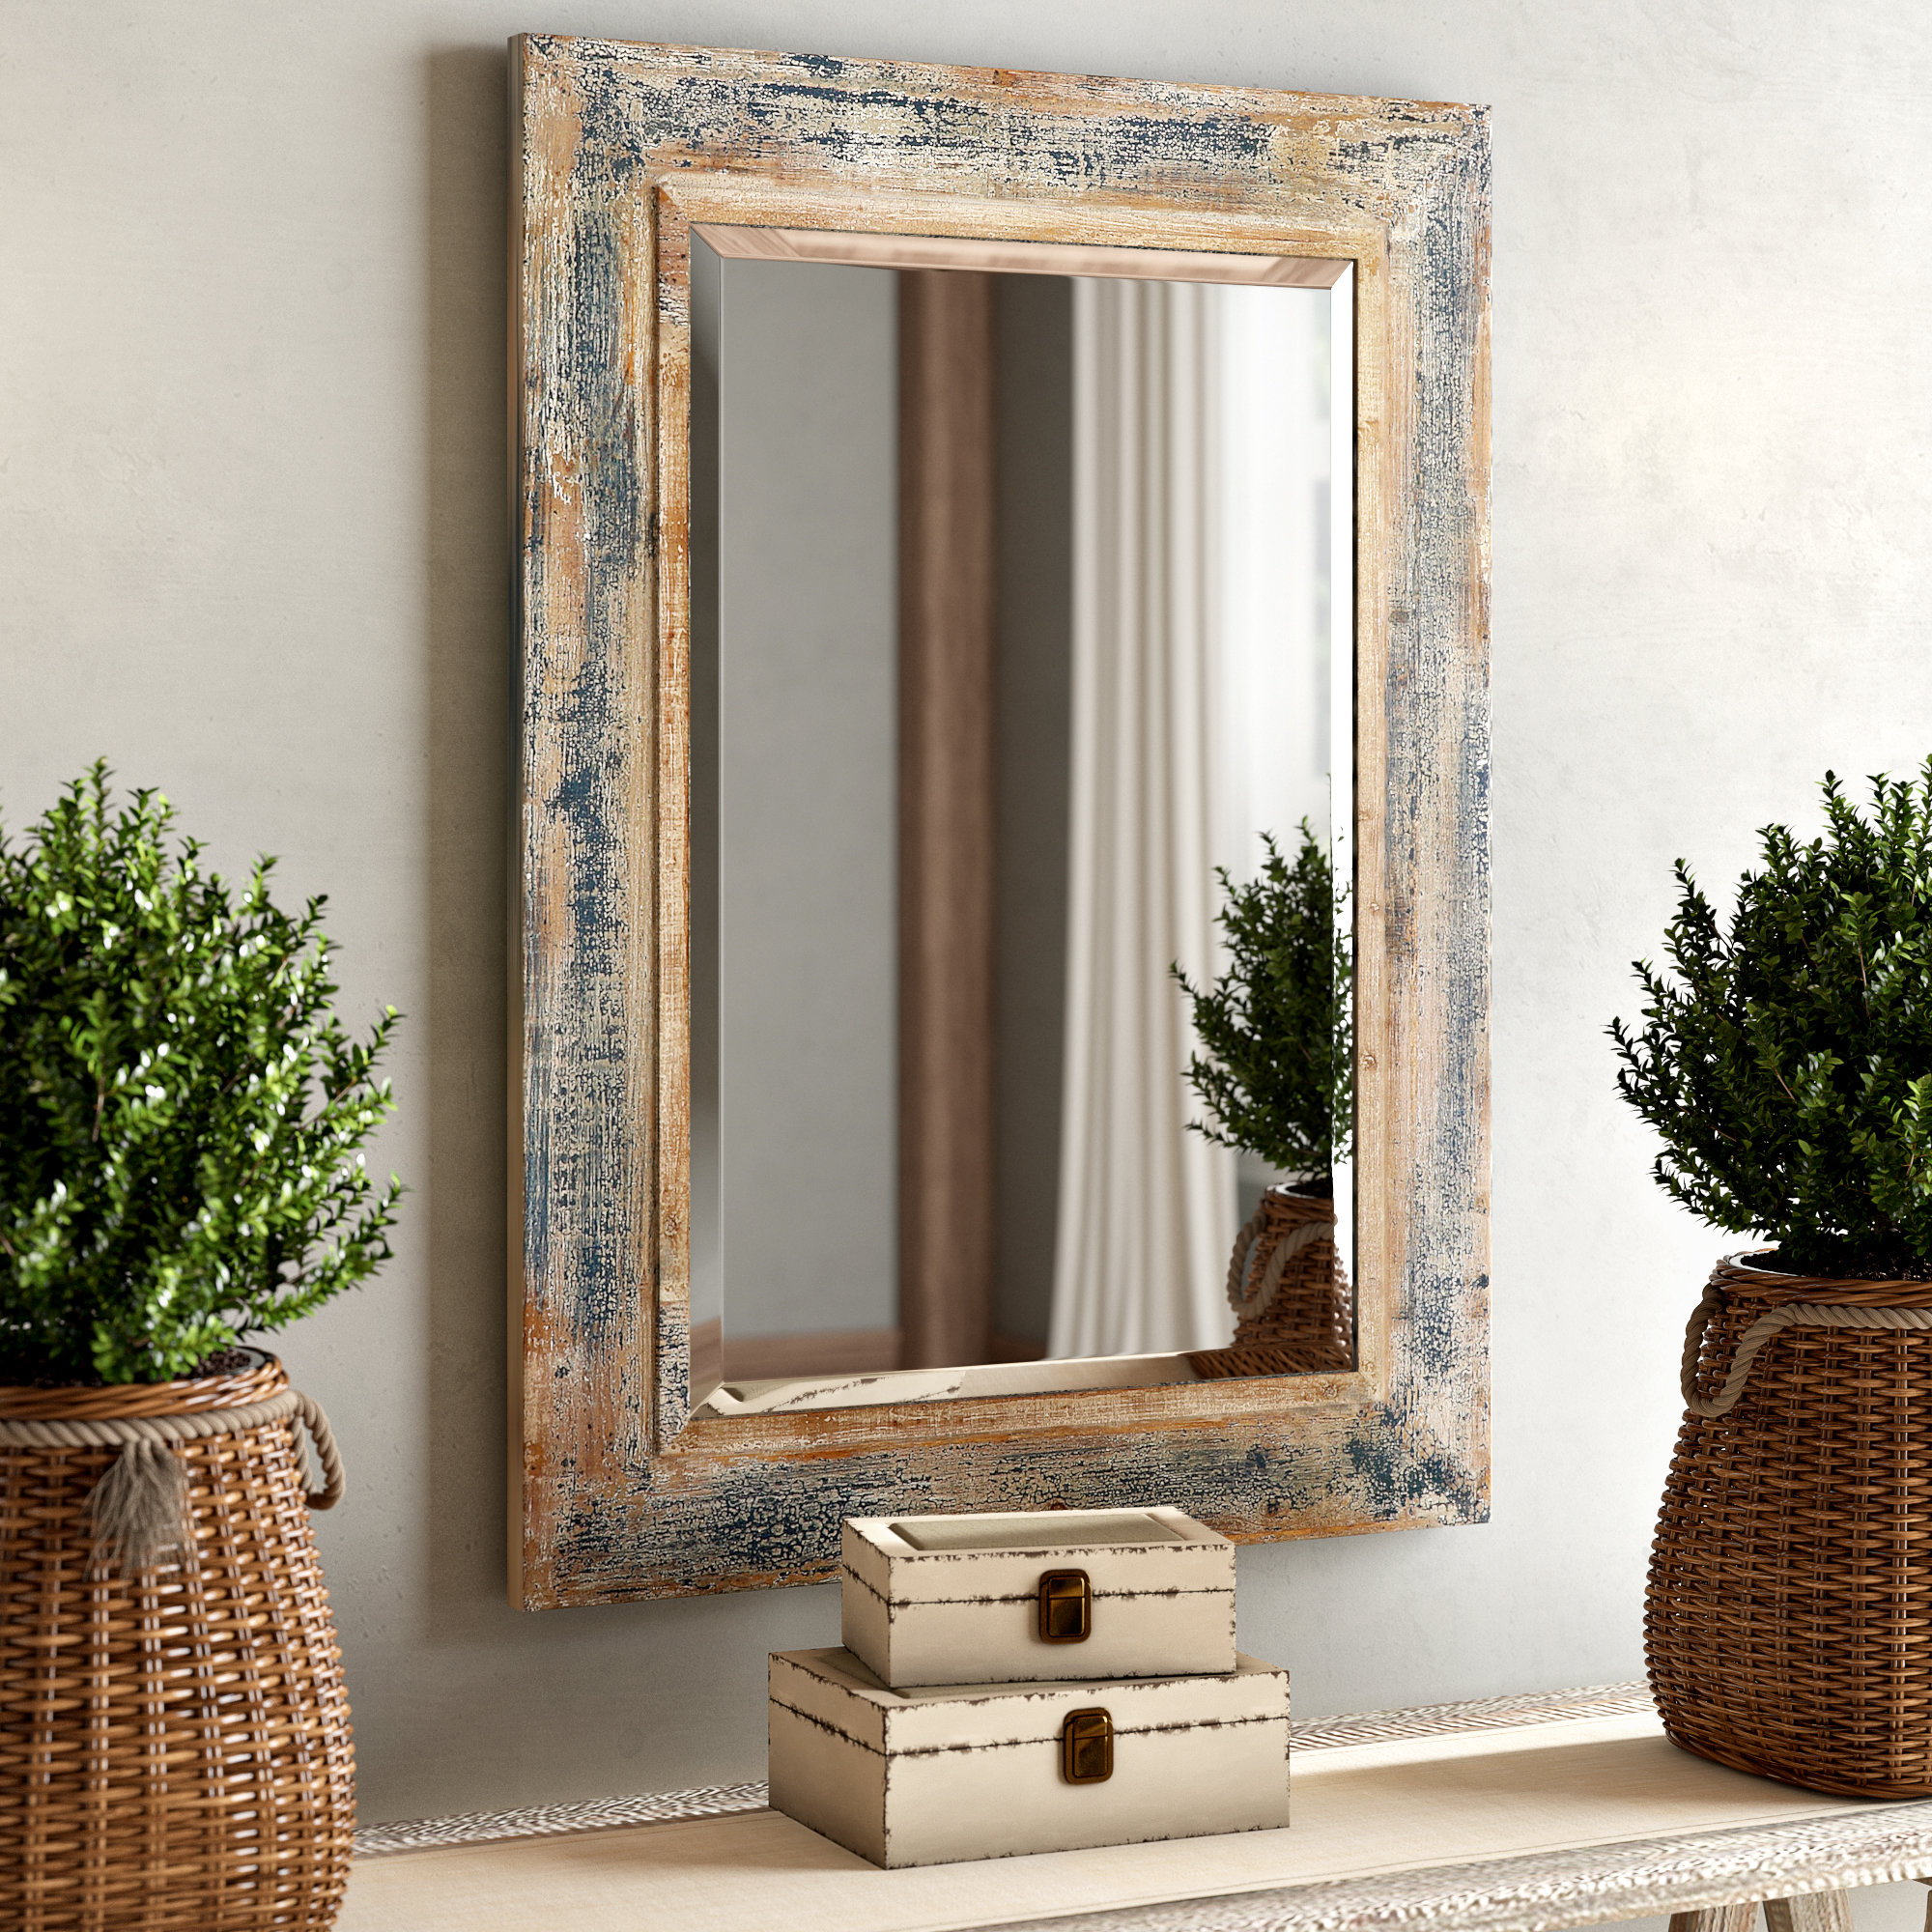 Dining Room Wall Mirror | Wayfair For Marion Wall Mirrors (View 15 of 20)